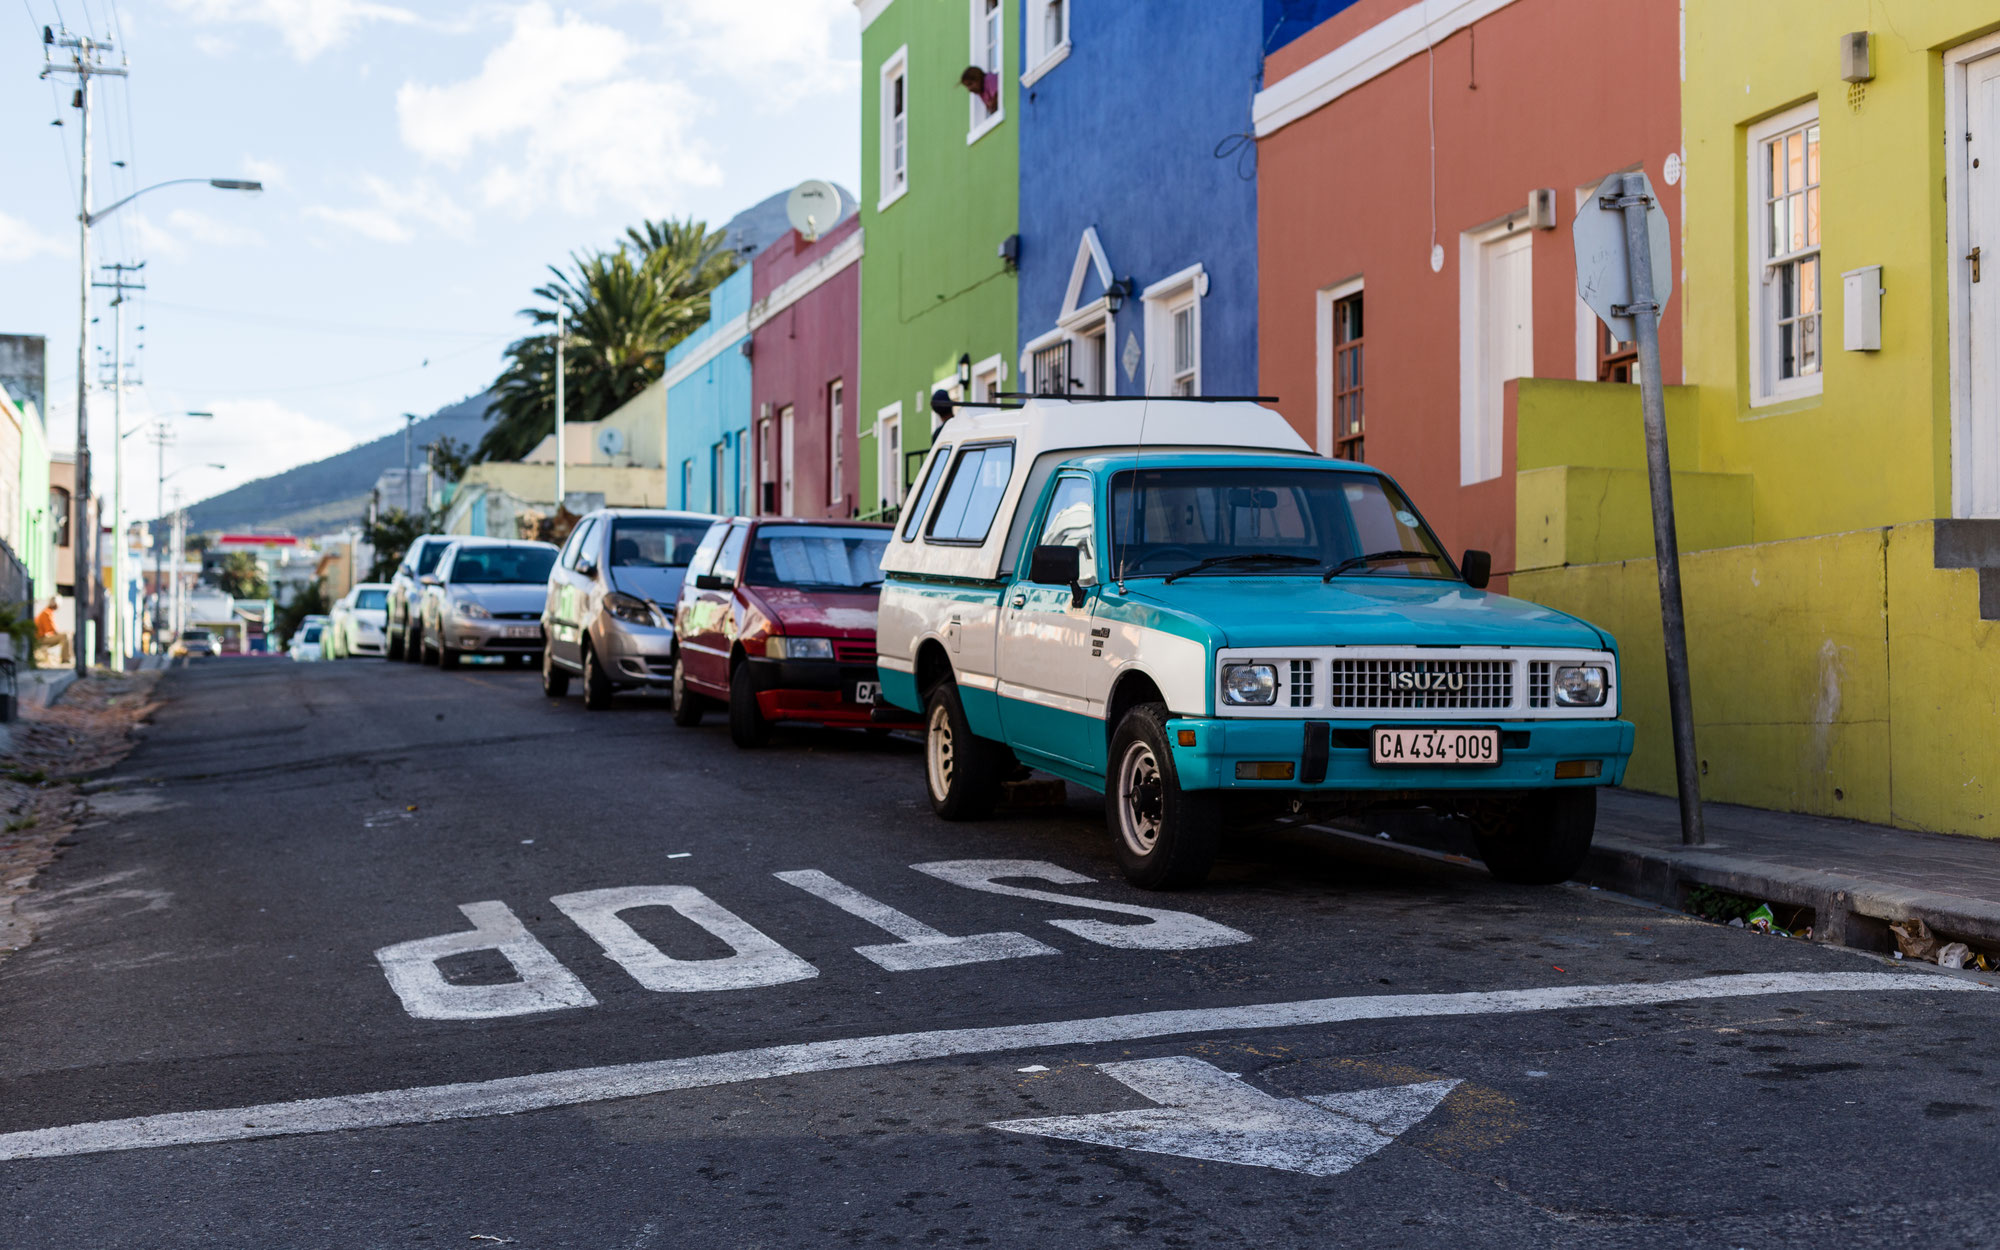 Bo-Kaap - Cape Town's colourful Cape Malay heritage